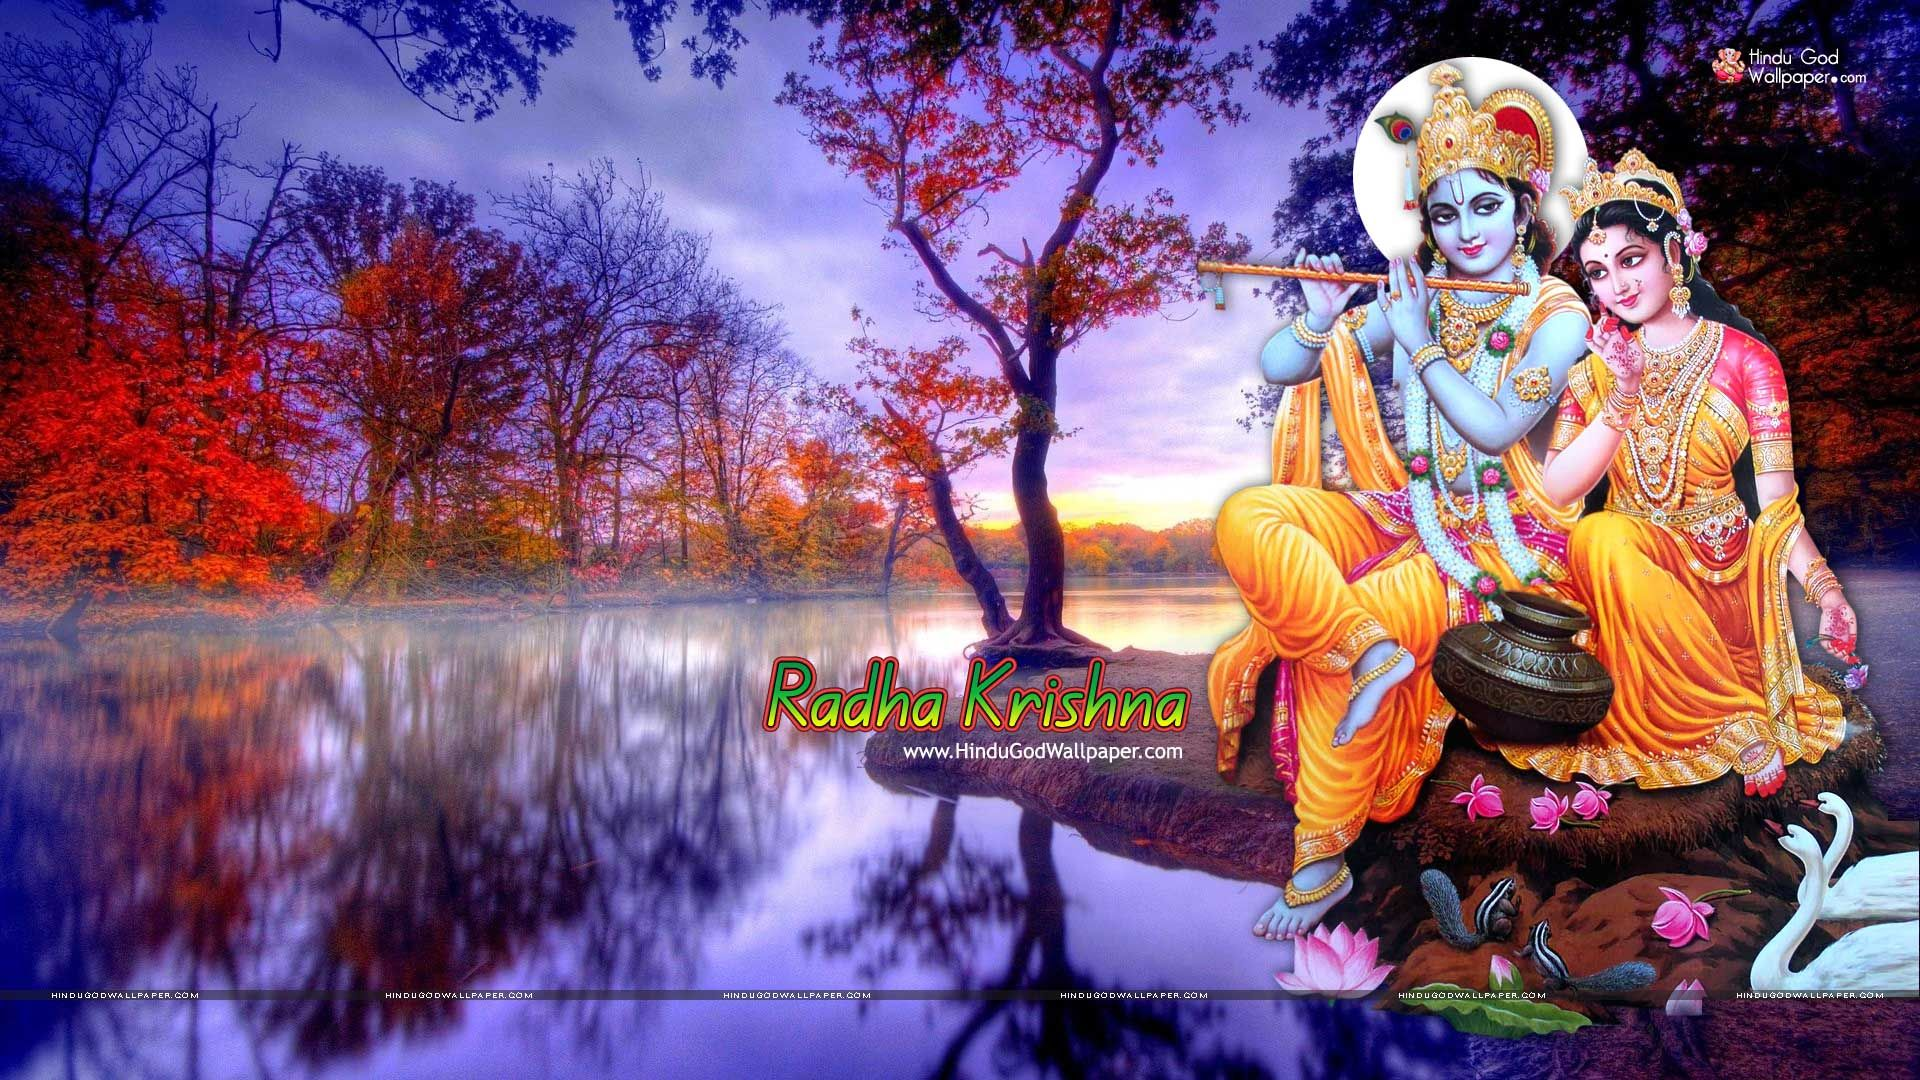 1080p Lord Krishna Hd Wallpapers Full Size Download Krishna Wallpaper Lord Krishna Hd Wallpaper Lord Krishna Wallpapers